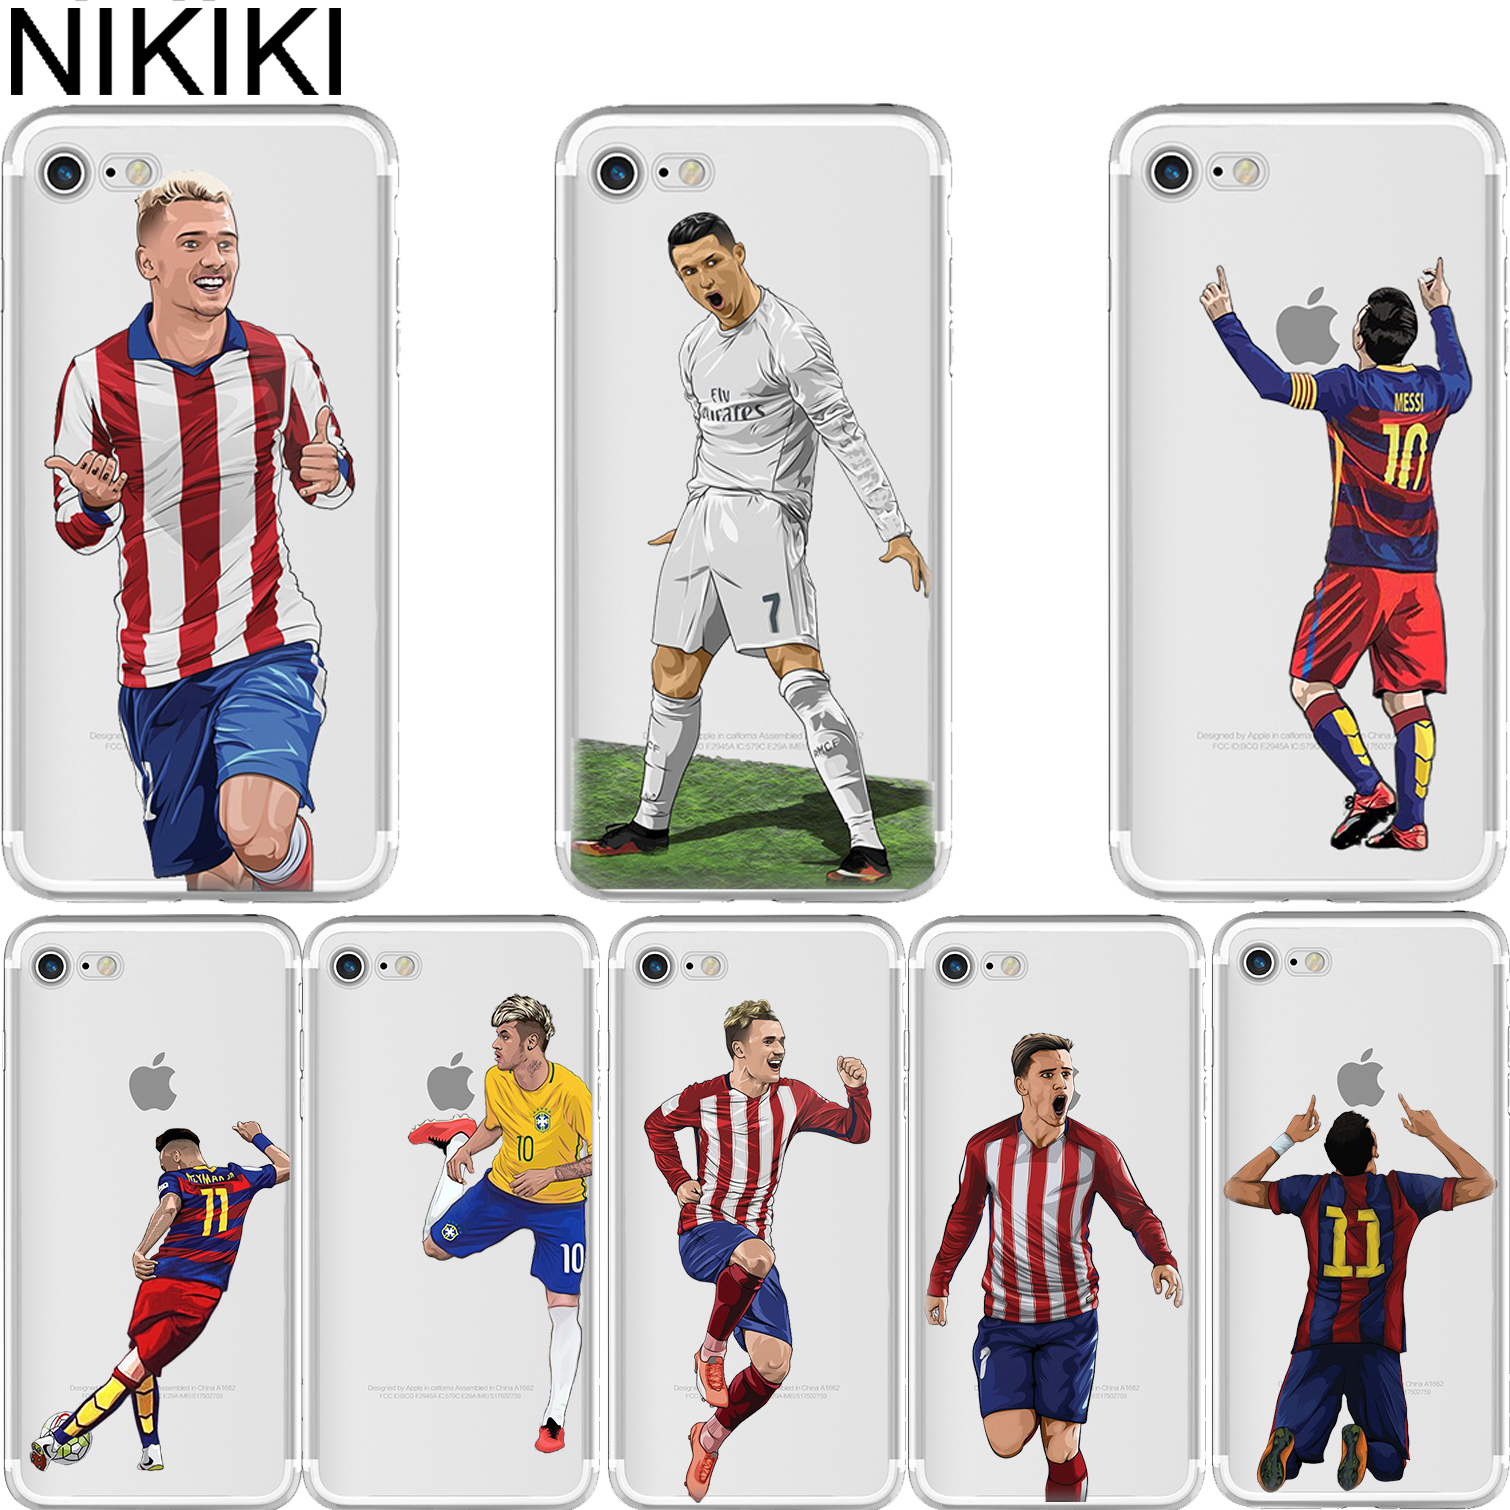 NIKIKI Soccer Cristiano Ronaldo Messi Neymar Soft Silicone Phone Cases Cover for Iphone 6 6S 7 8 Plus 5S SE X Coque Fundas